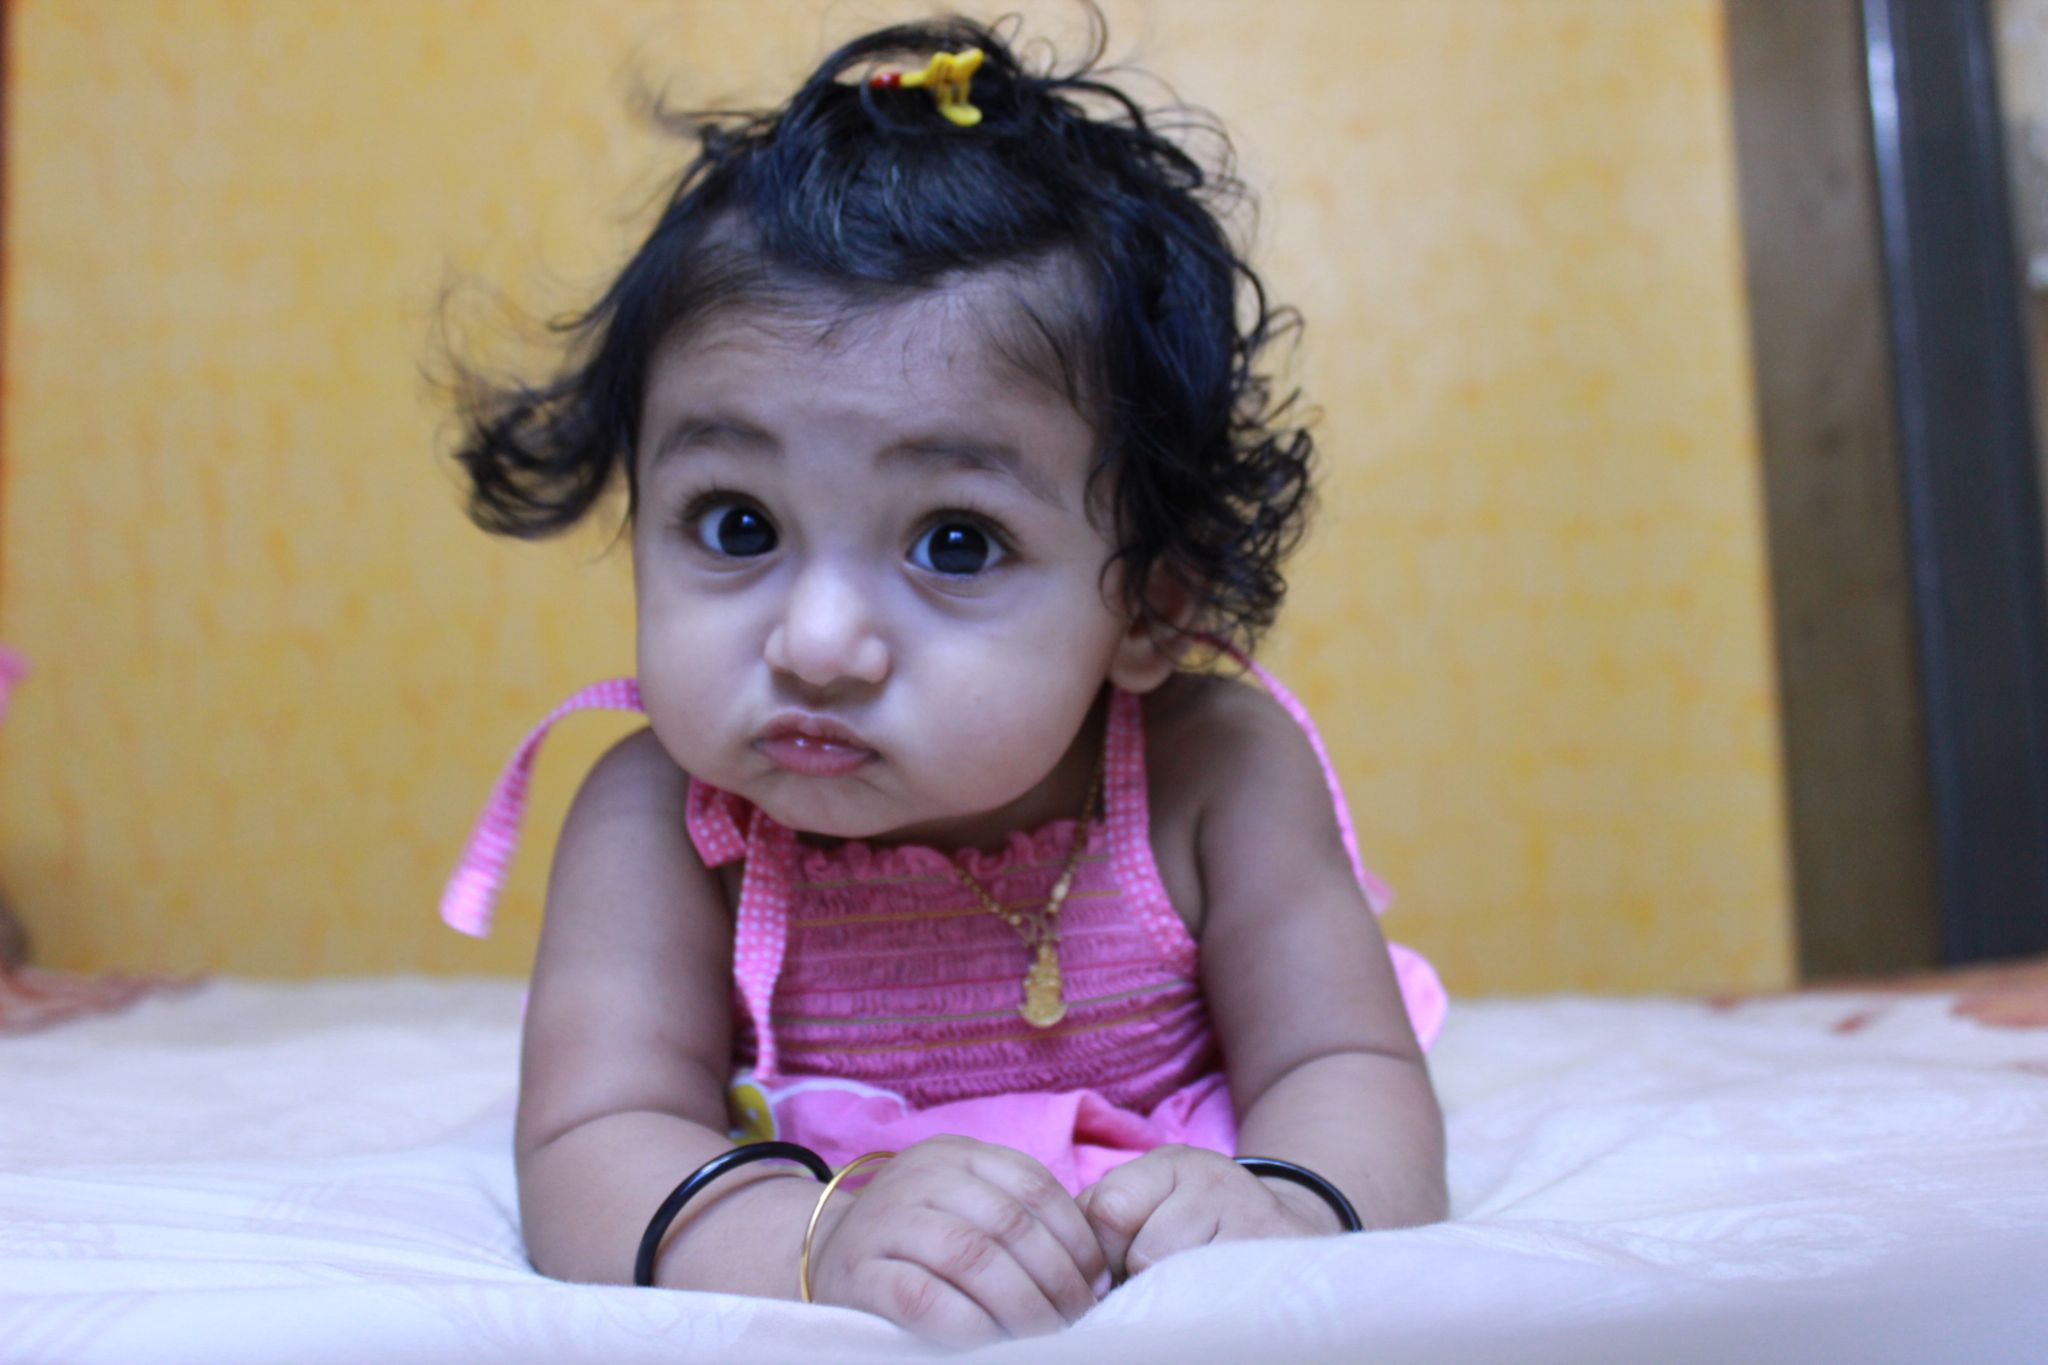 Baby pout  by Dineshnath Baluchamy